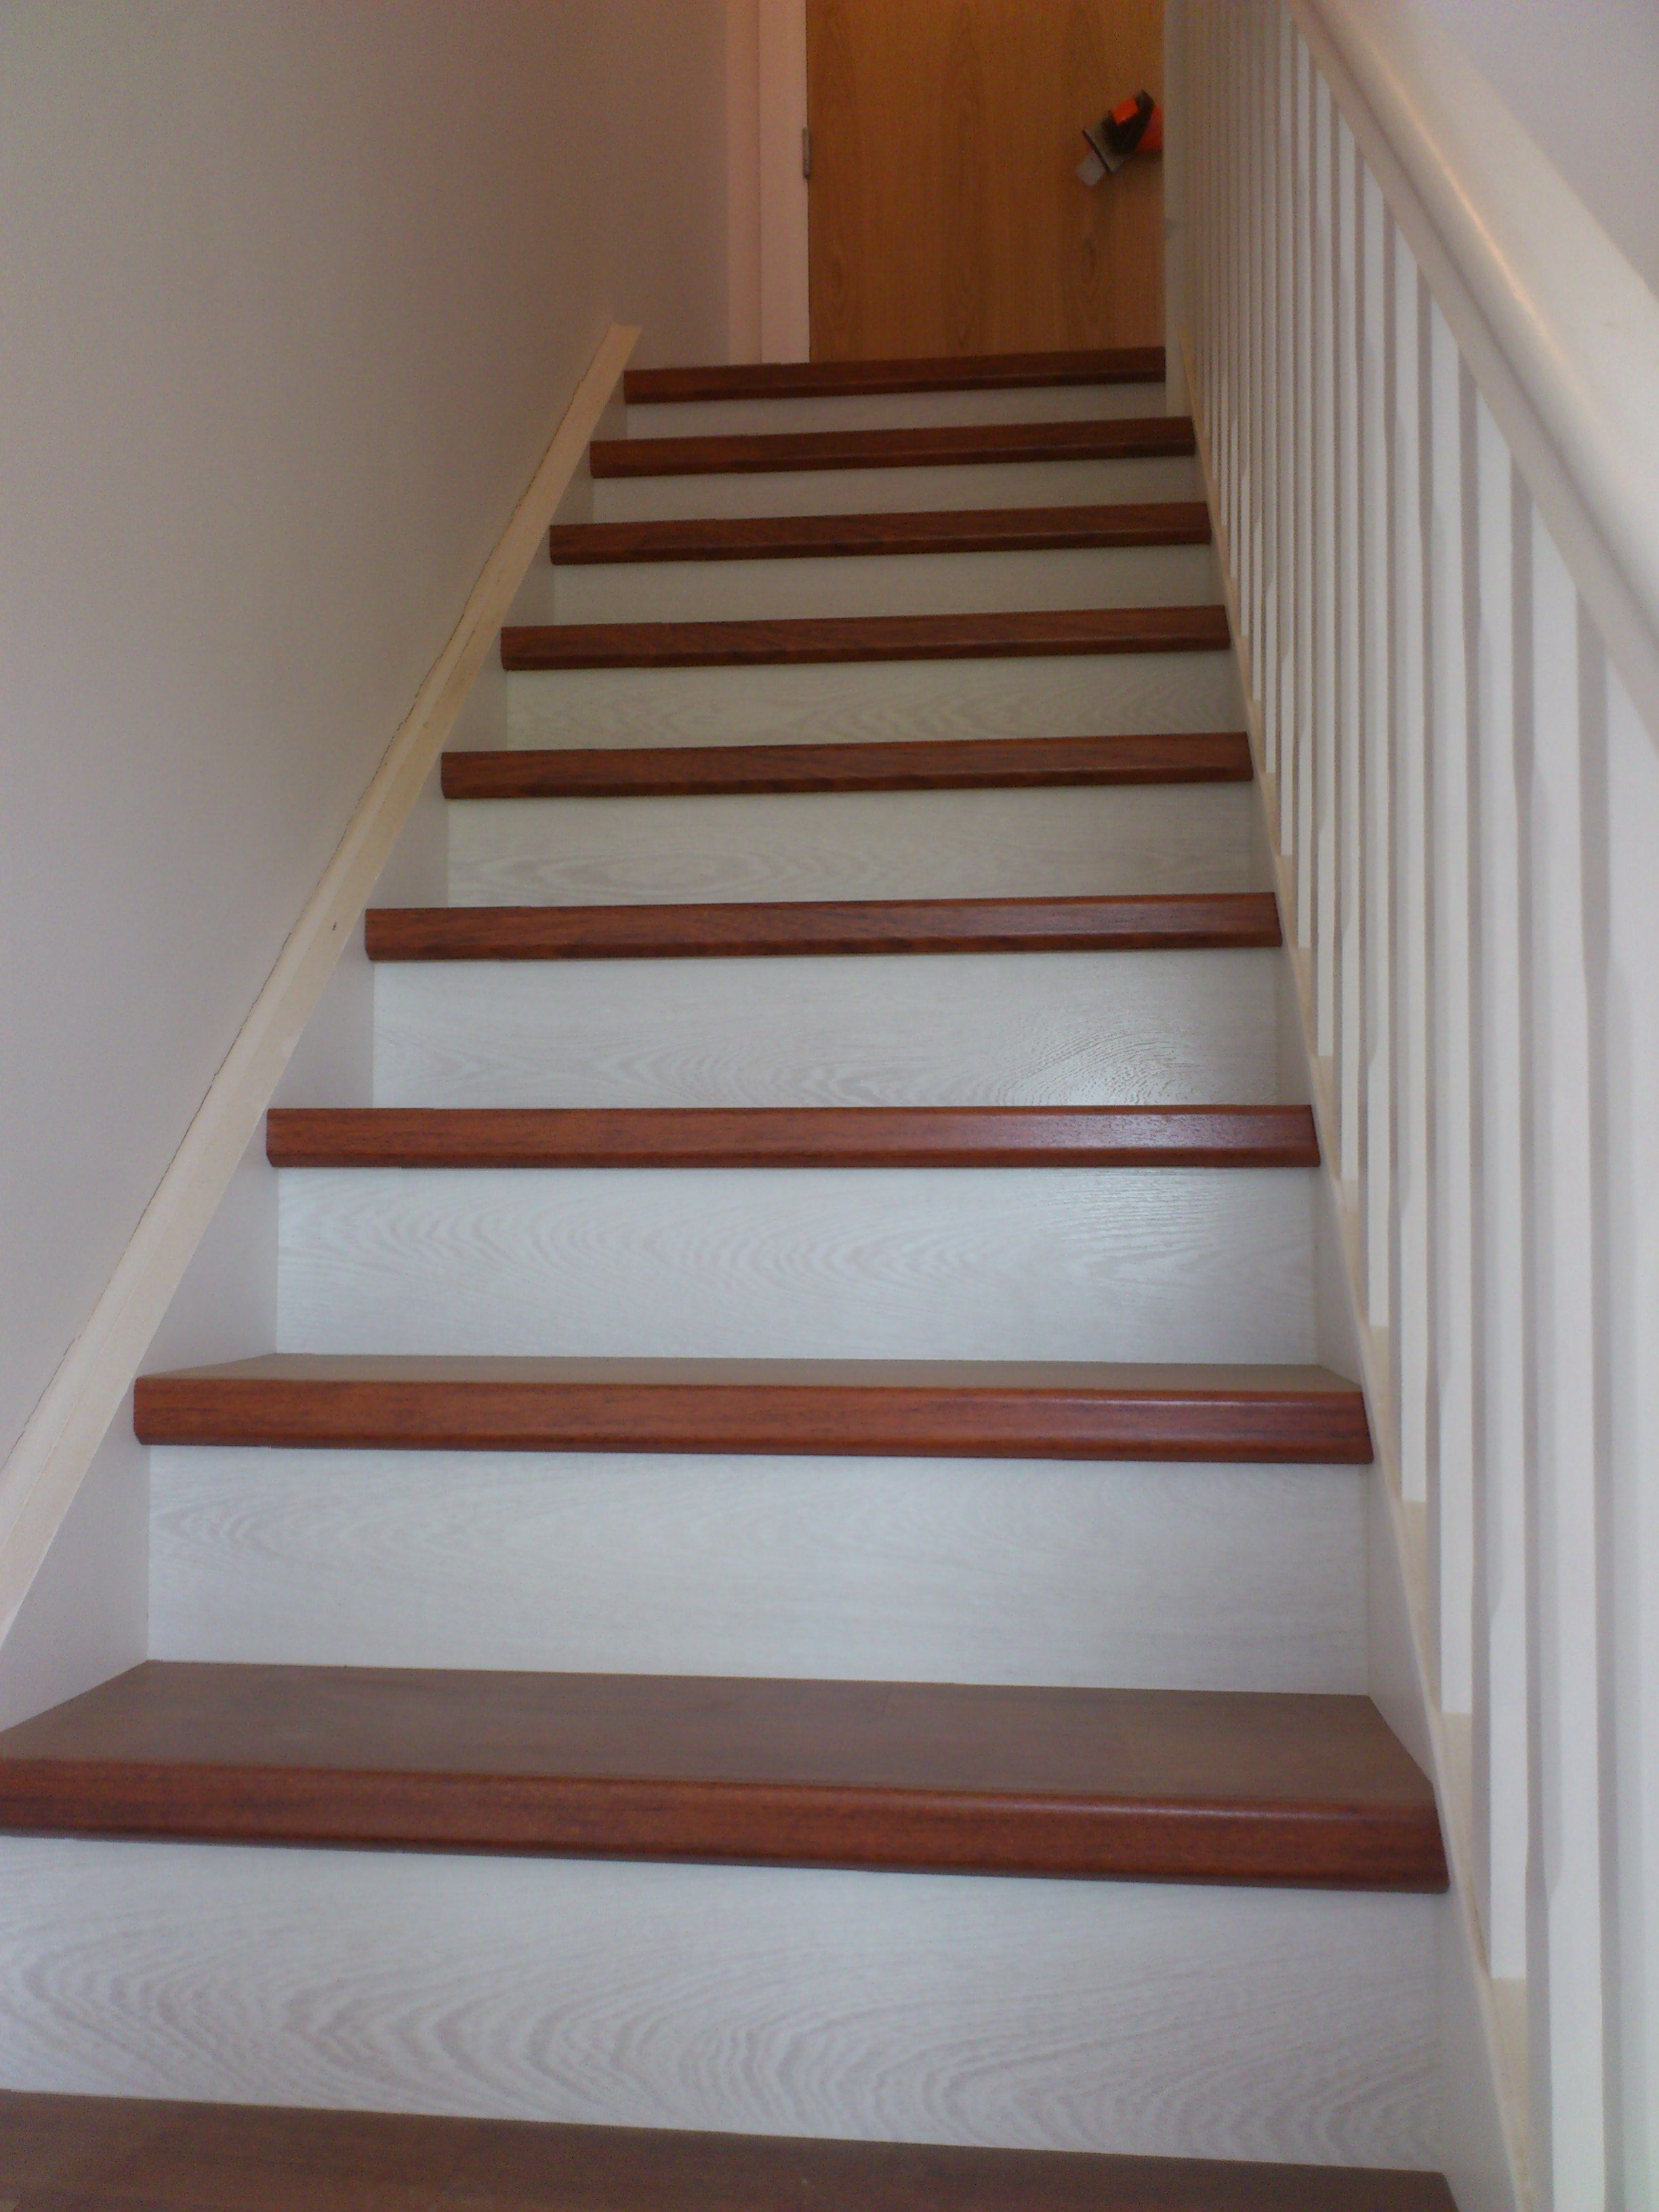 QuickStep stair renovation Laminate stairs, Quick step